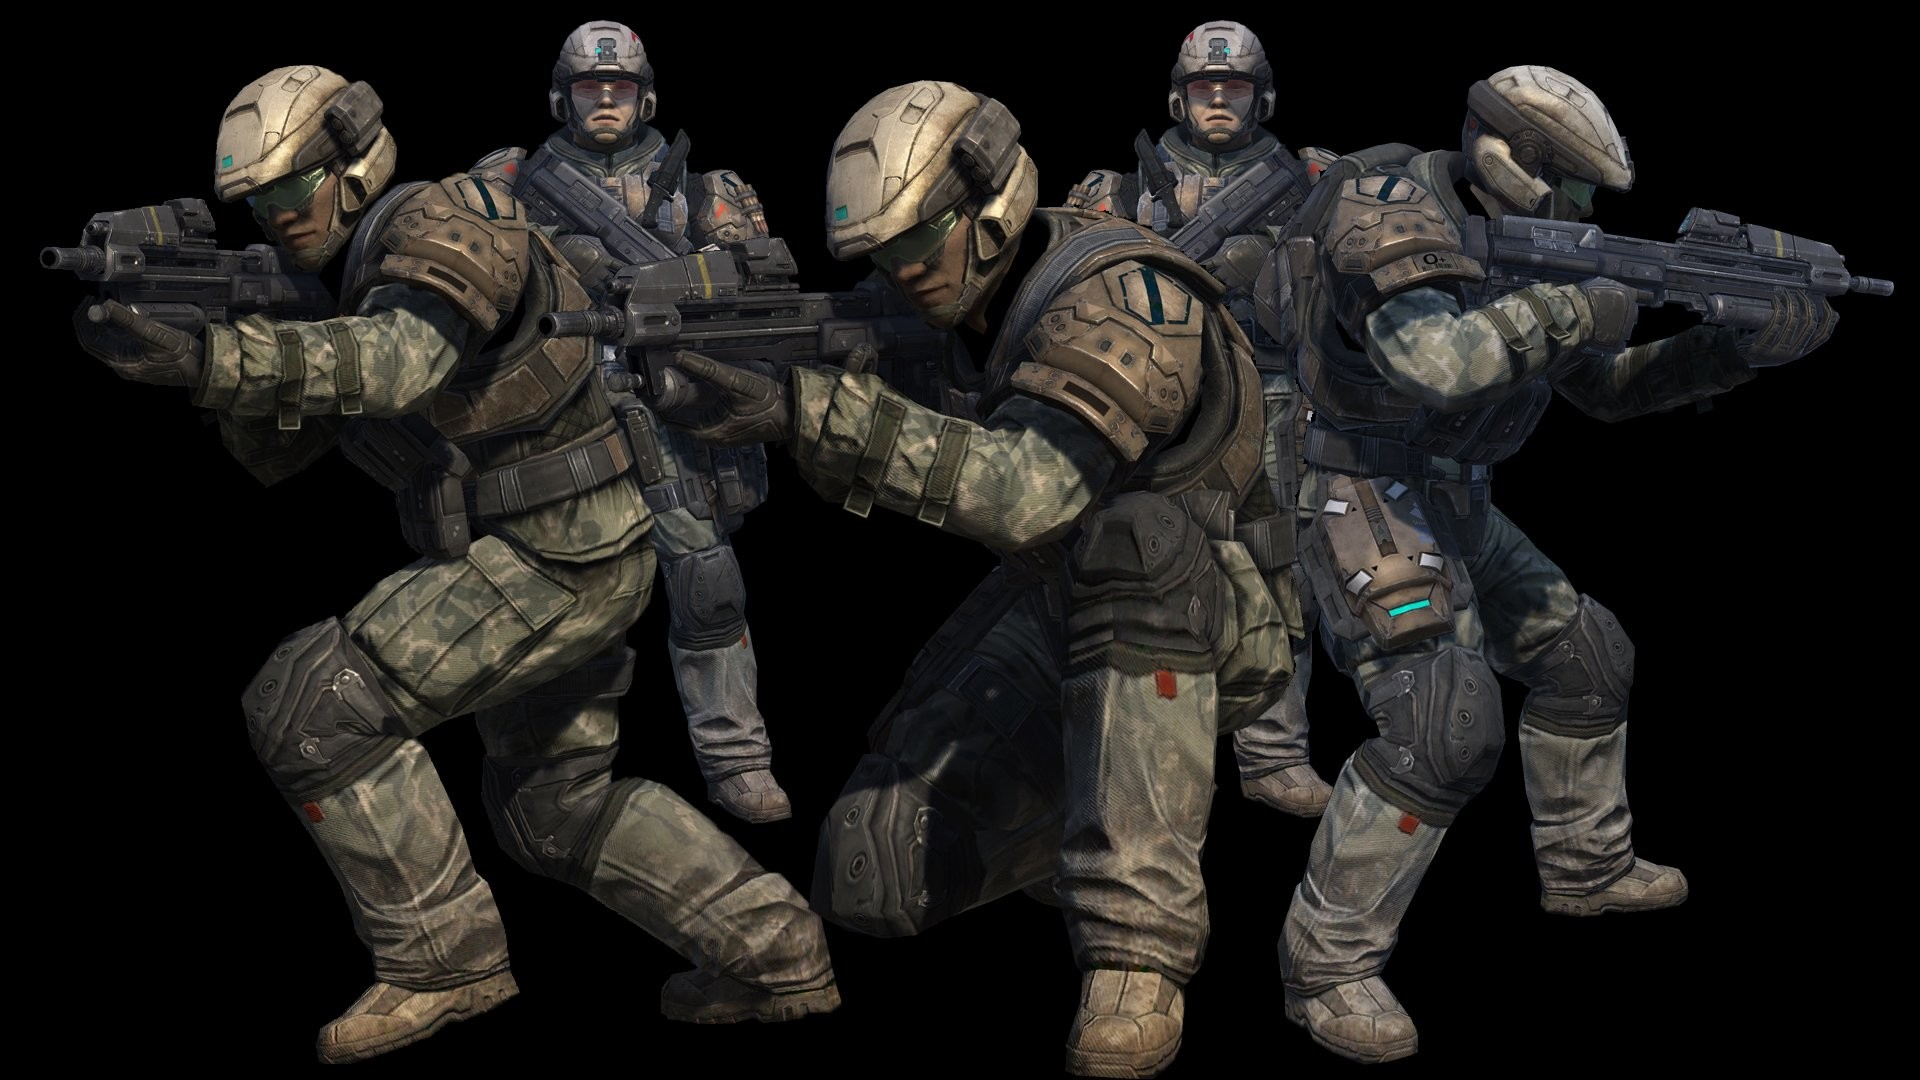 1920x1080 Halo Reach Marines